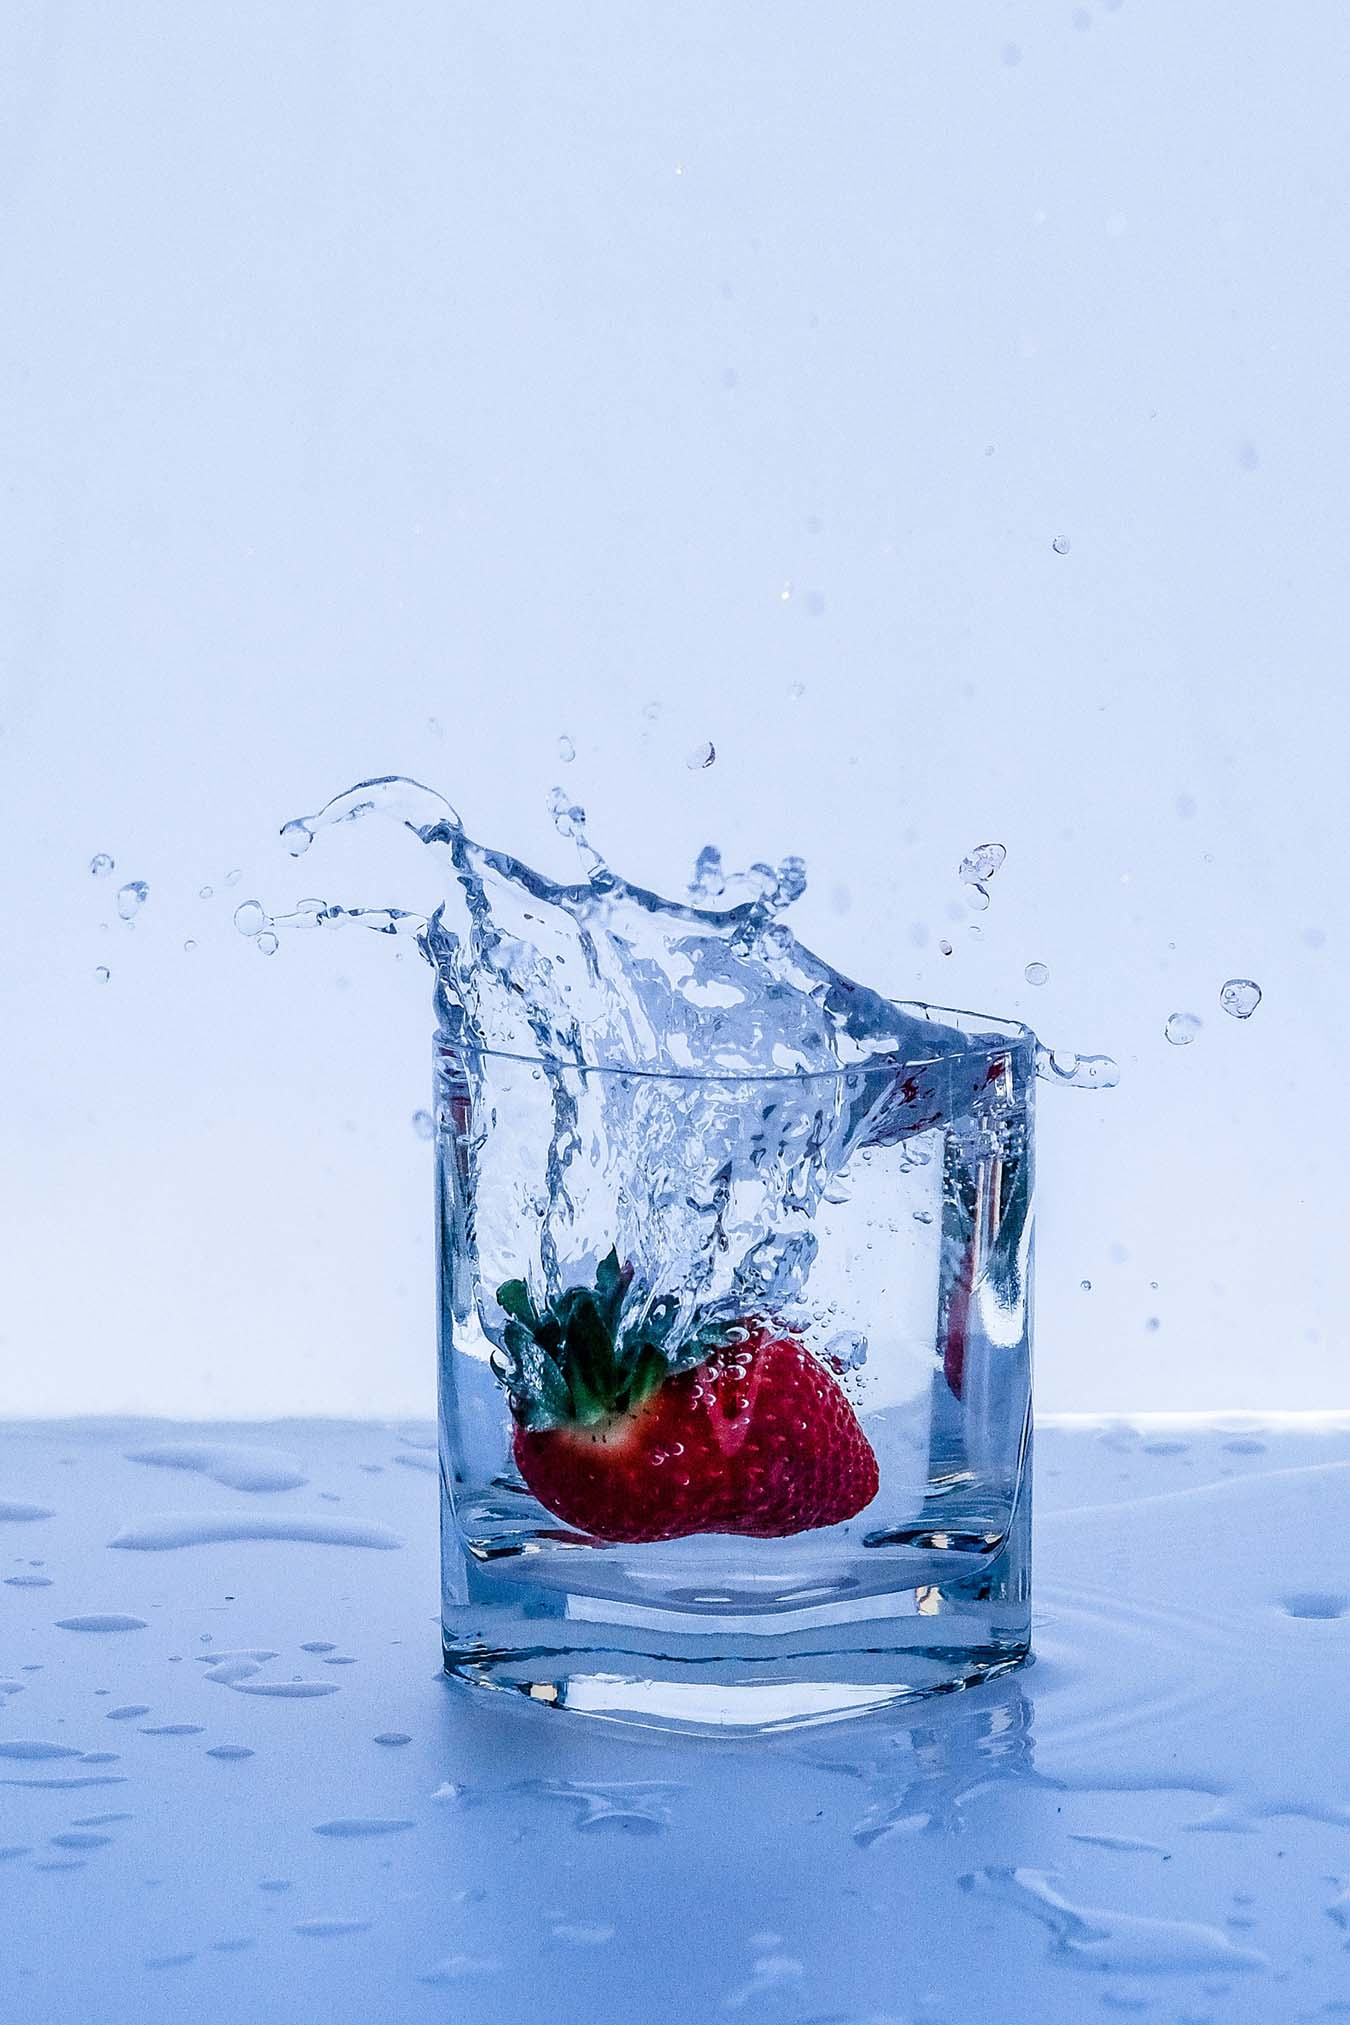 A red strawberry falls into a full glass of water. Water splashes out.